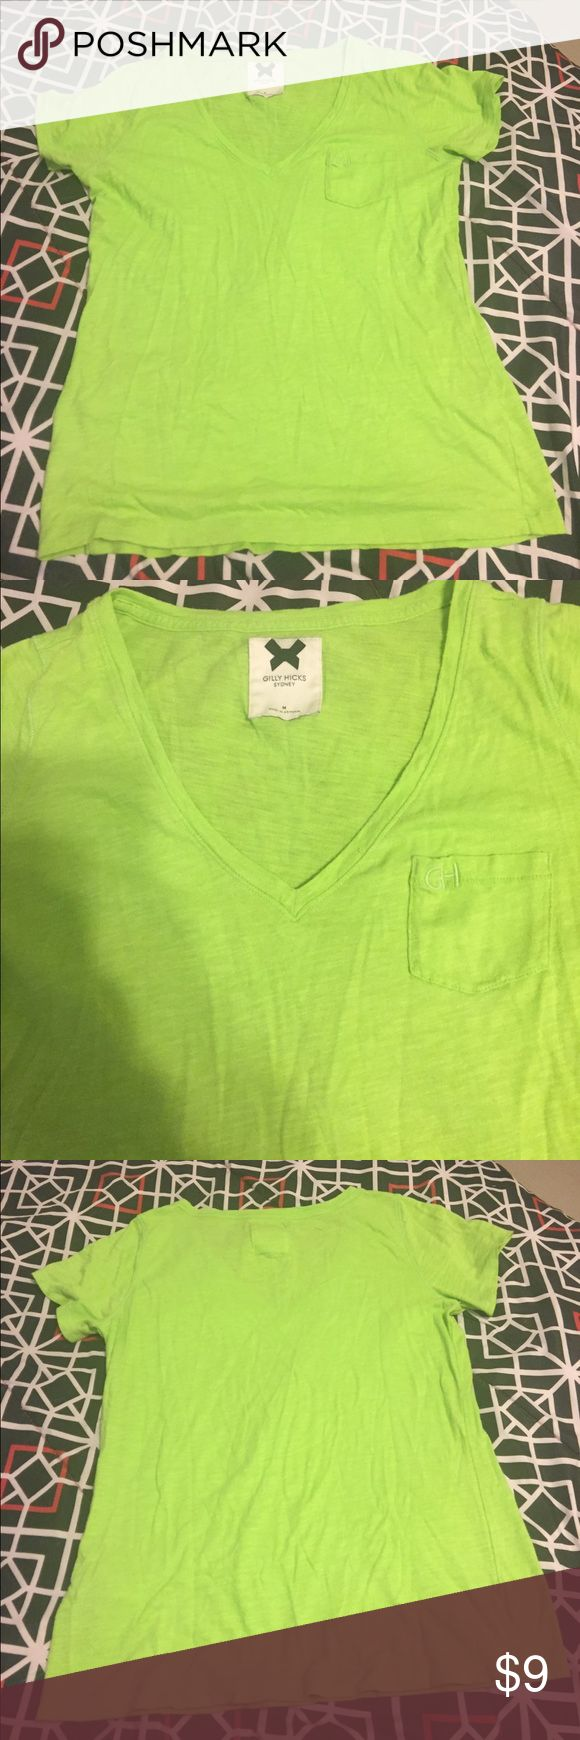 Gilly Hicks Lime Green Shirt Gilly Hicks bright lime green shirt is great for spring and summer! No stains or rips. Comes from a smoke free home. Gilly Hicks Tops Tees - Short Sleeve